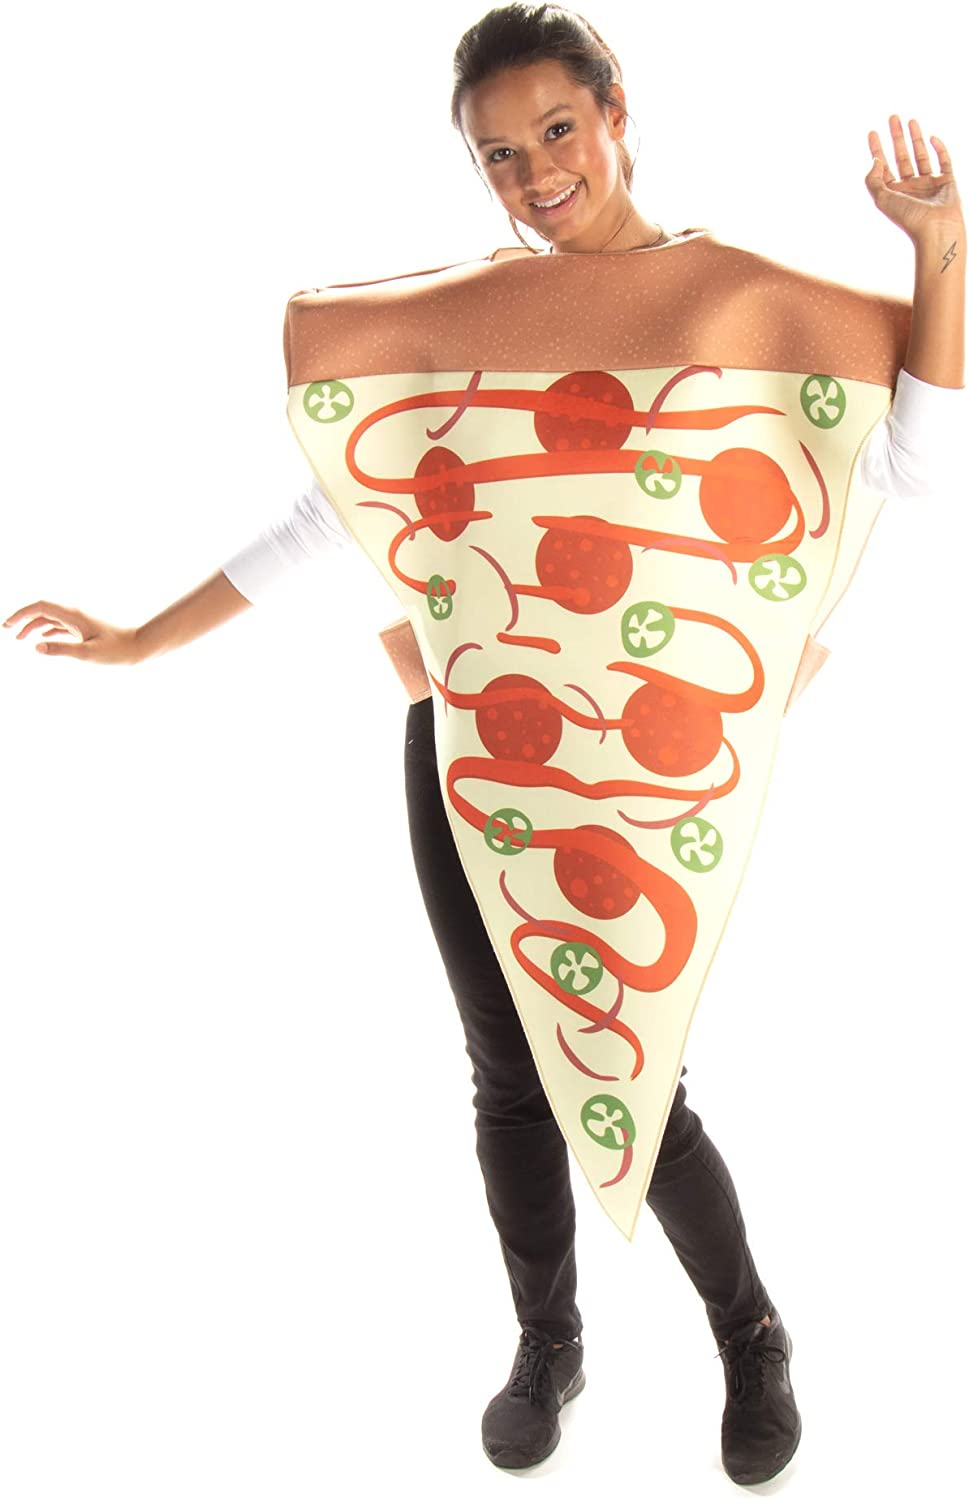 Supreme Pizza Slice Halloween Costume - Adult Unisex Outfit, Funny Food Costumes